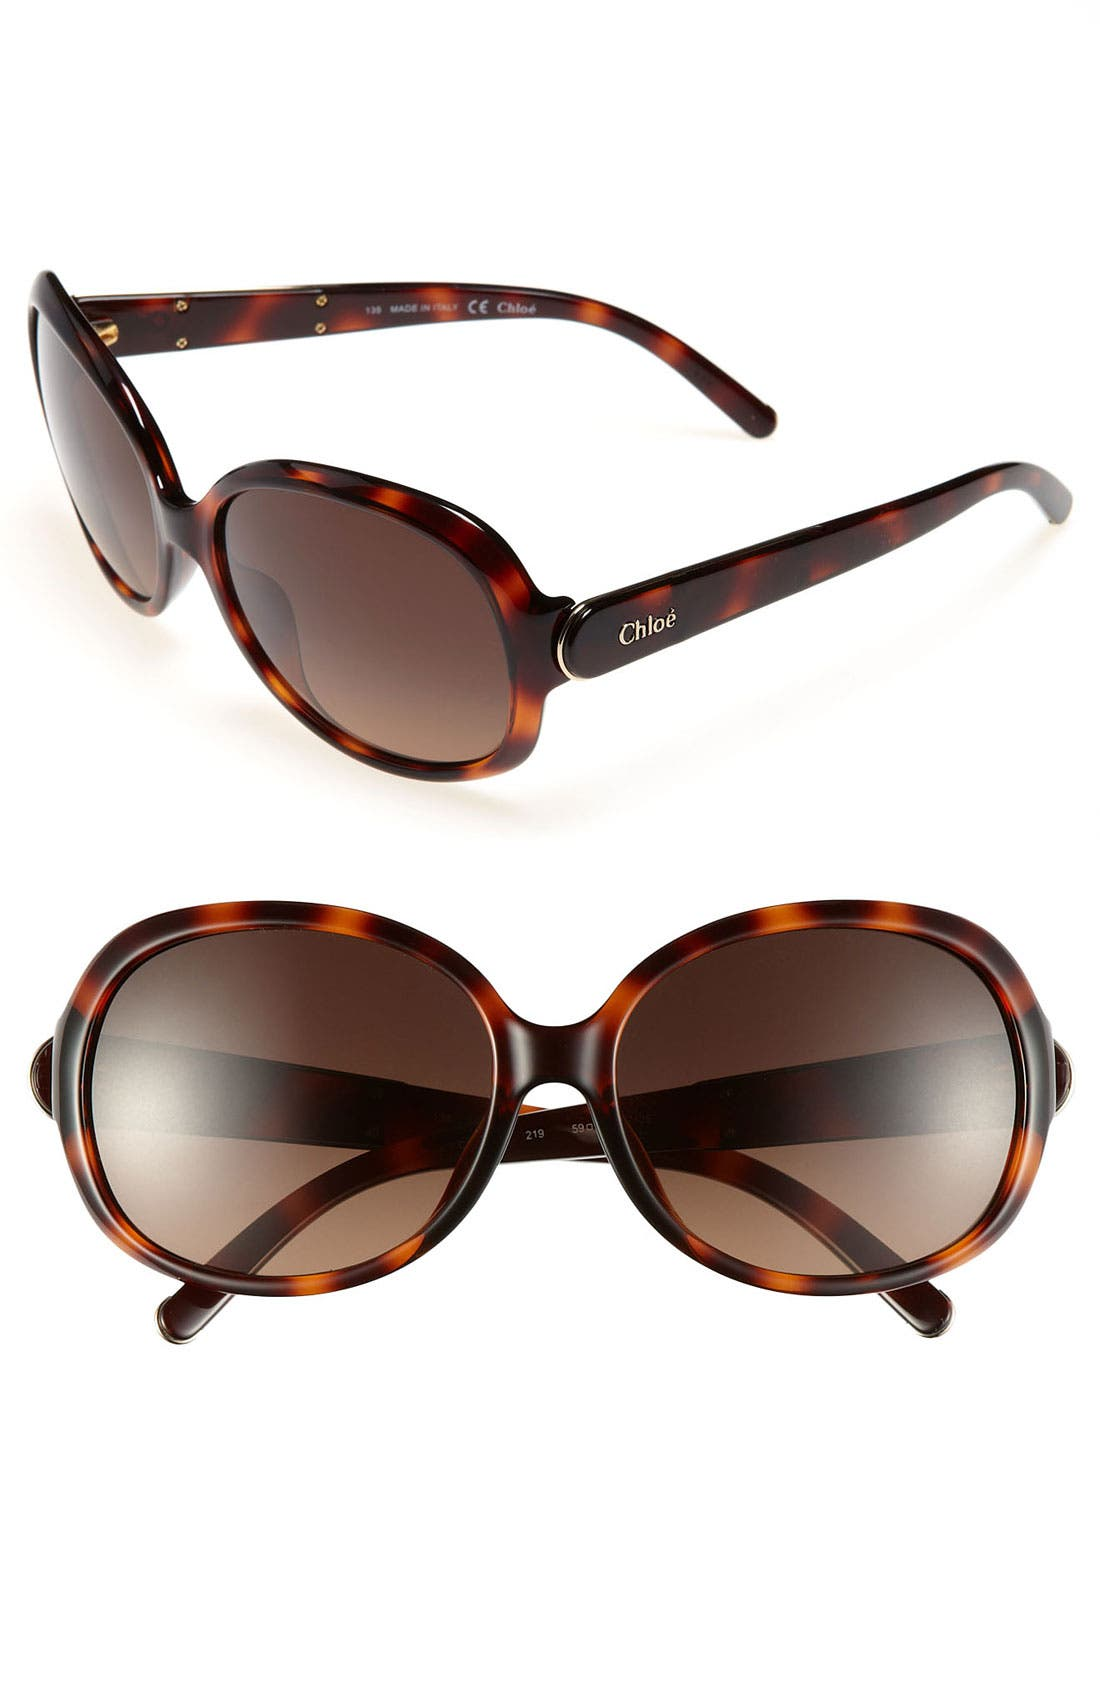 Main Image - Chloé 59mm Oversized Sunglasses (Online Only)